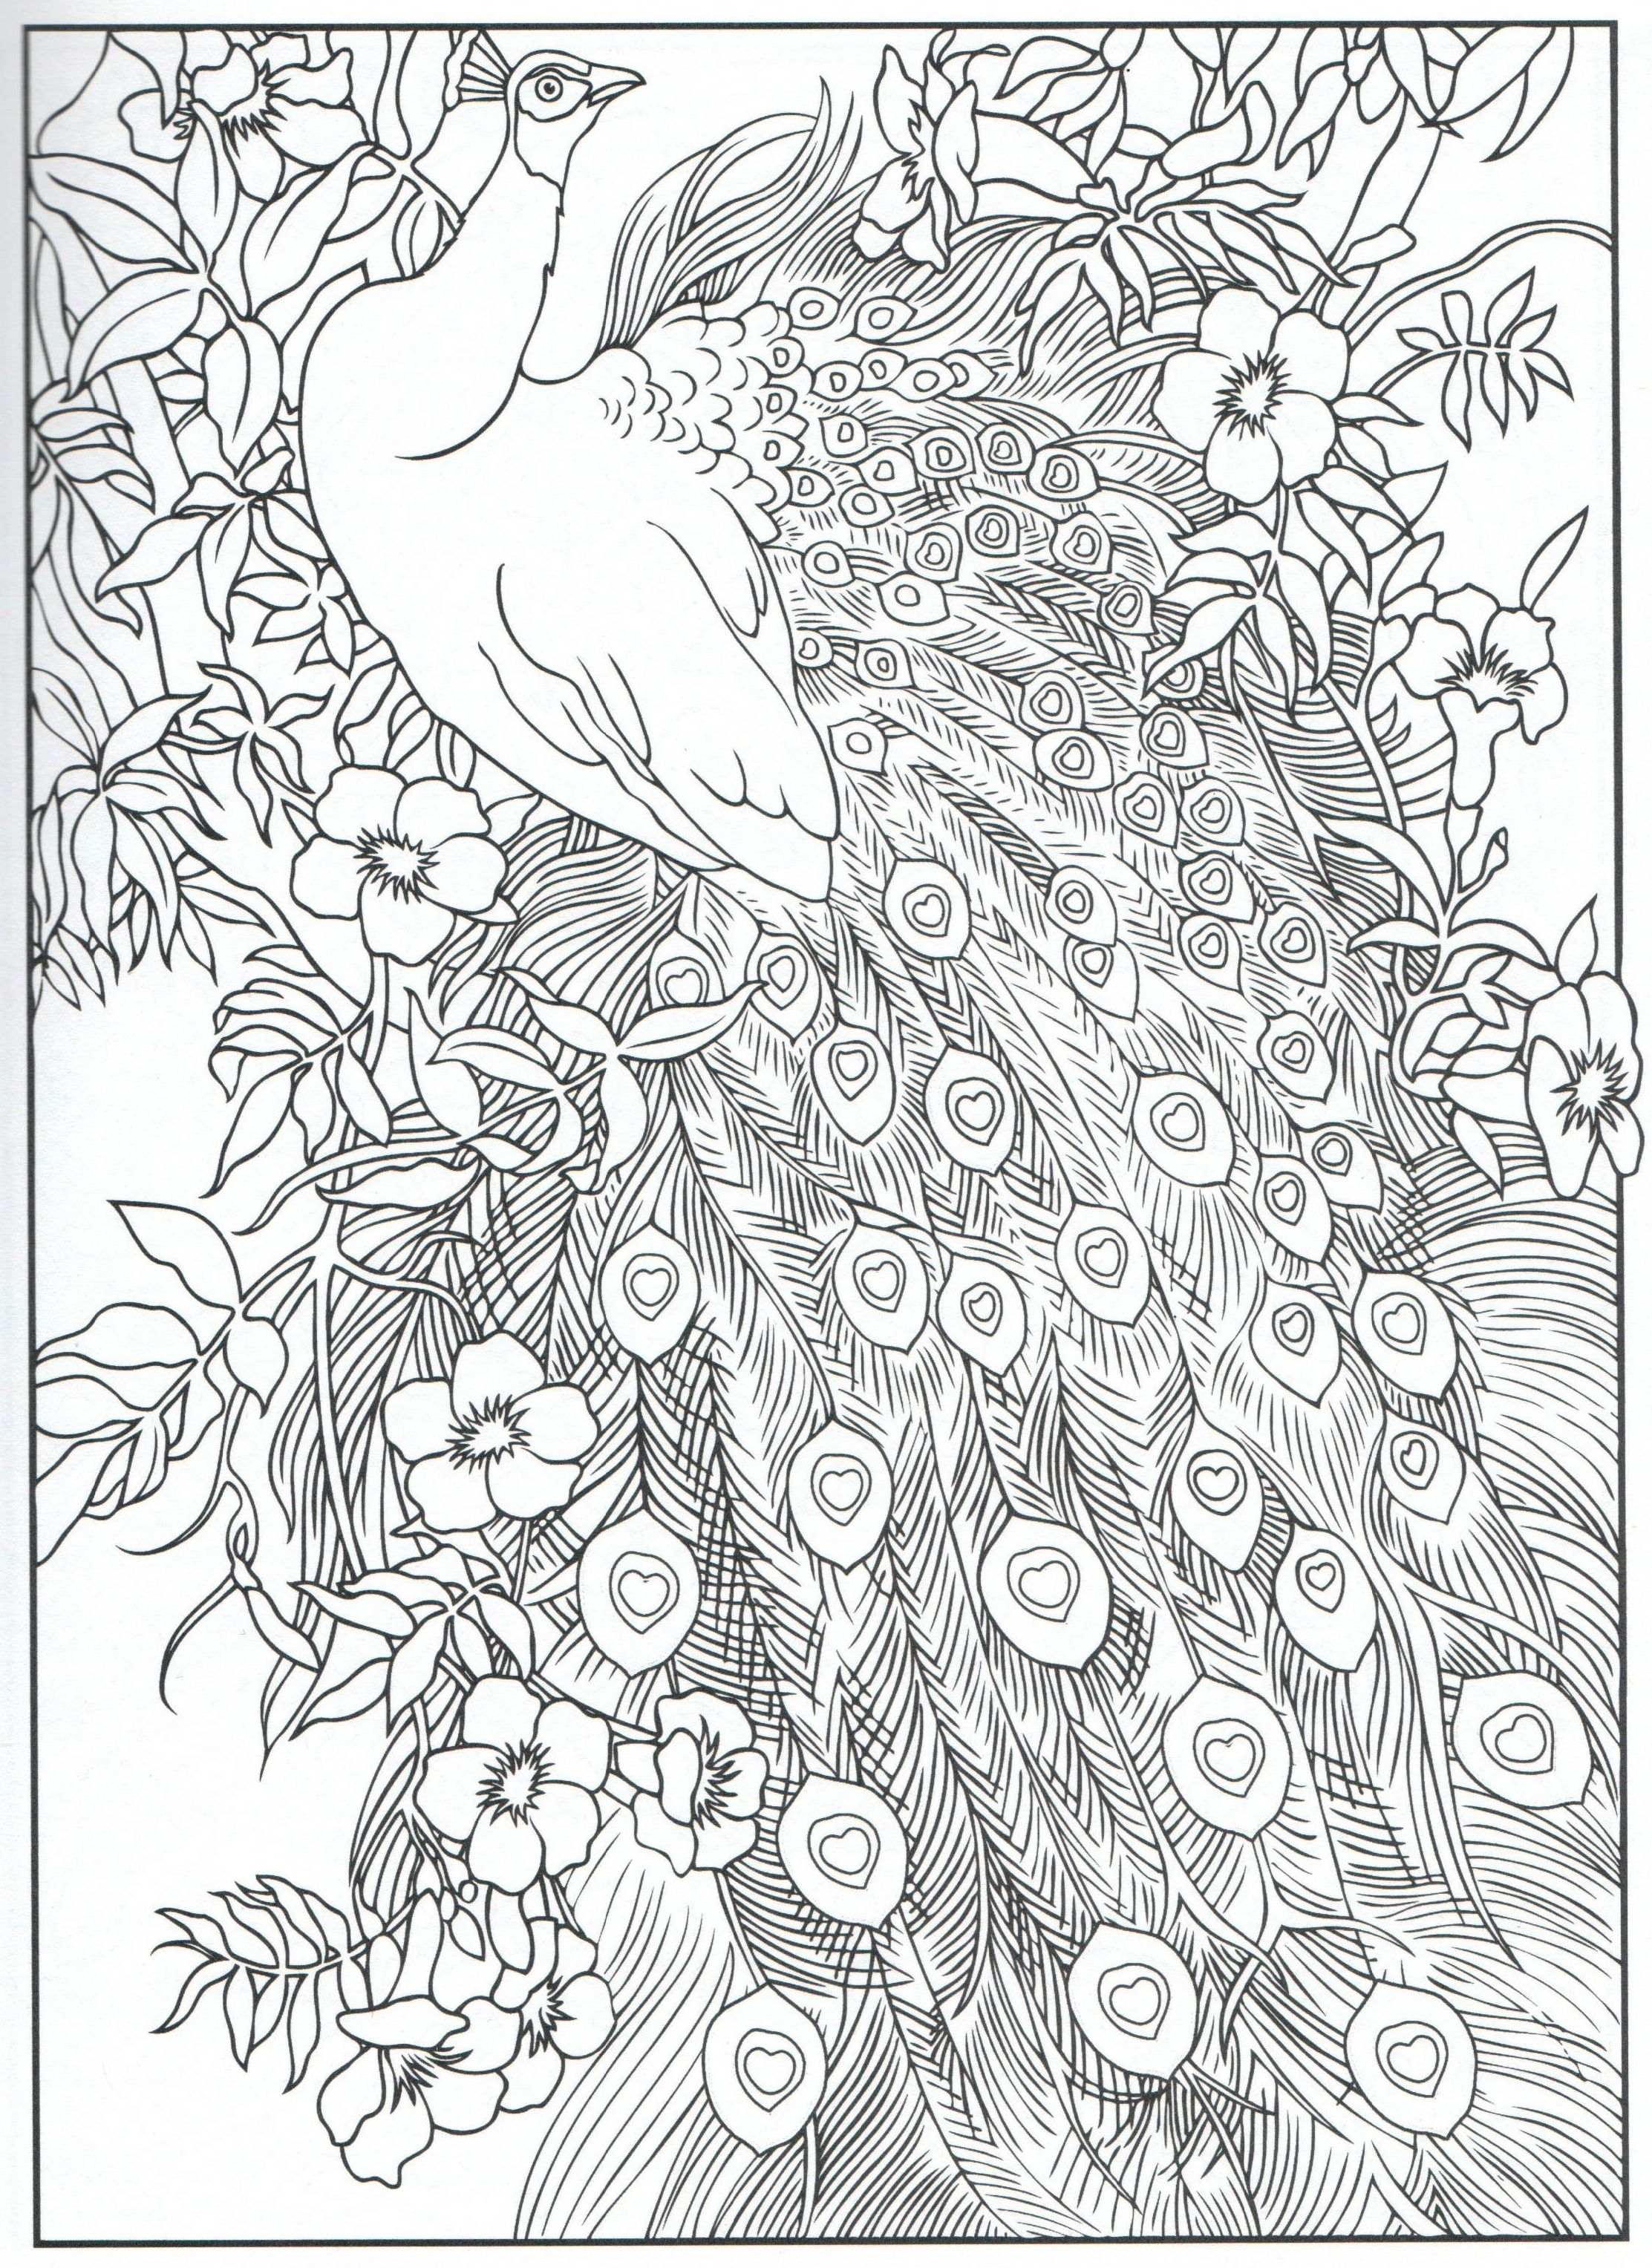 Peacock Coloring Page For Adults 3 31 Peacock Coloring Pages Mandala Coloring Pages Designs Coloring Books